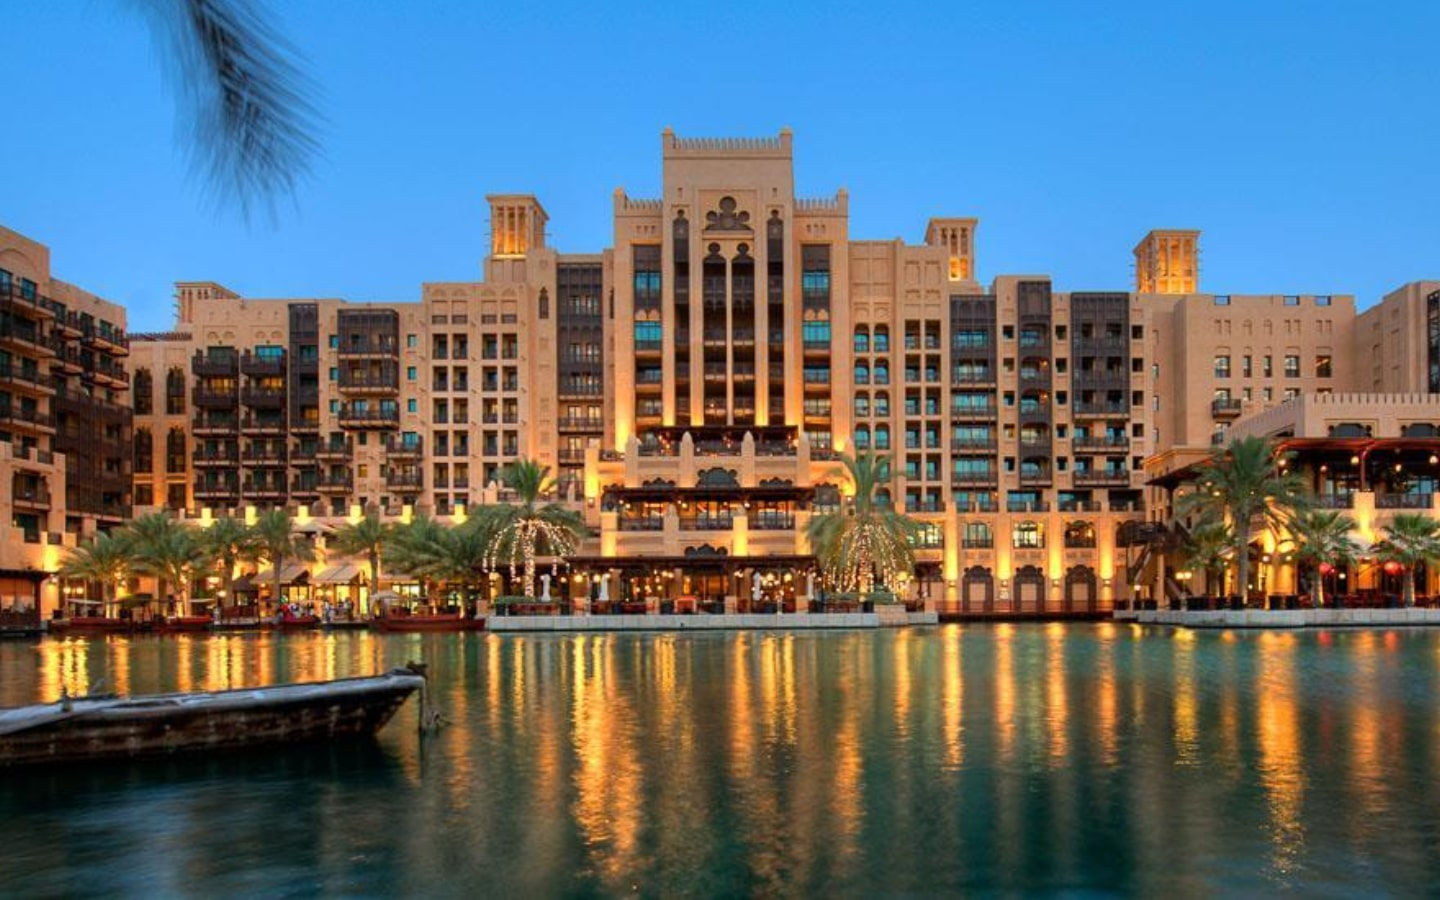 View of the canals and Jumeirah Mina A'Salam resort, which has Eid Al Adha staycations